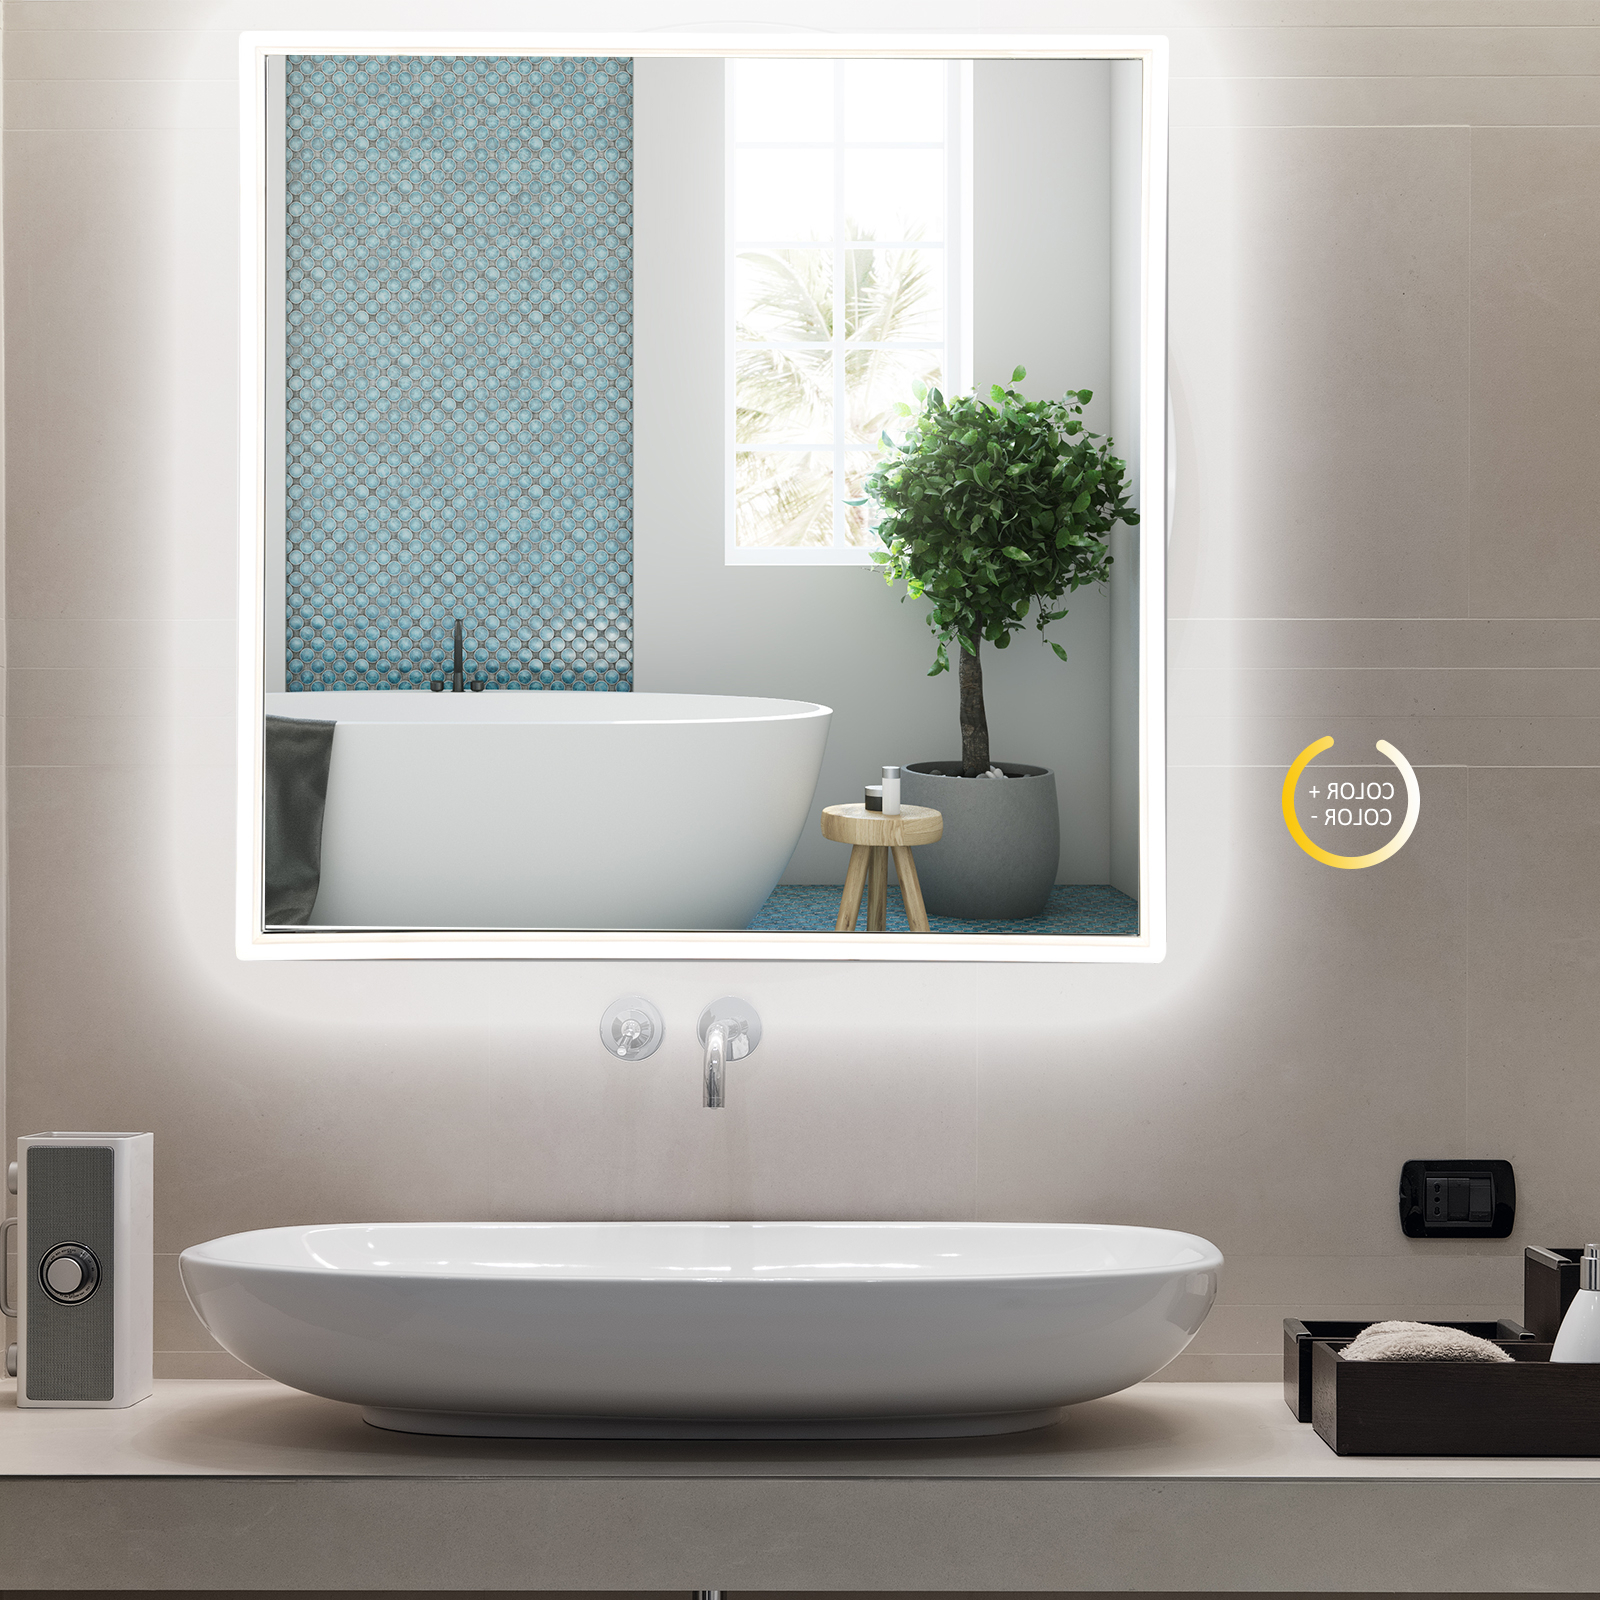 """Lighted Wall Mirrors Regarding Favorite Details About 24"""" Led Lighted Bathroom Wall Mirror 3 Colors Aluminum Glass Makeup Touch Button (View 16 of 20)"""